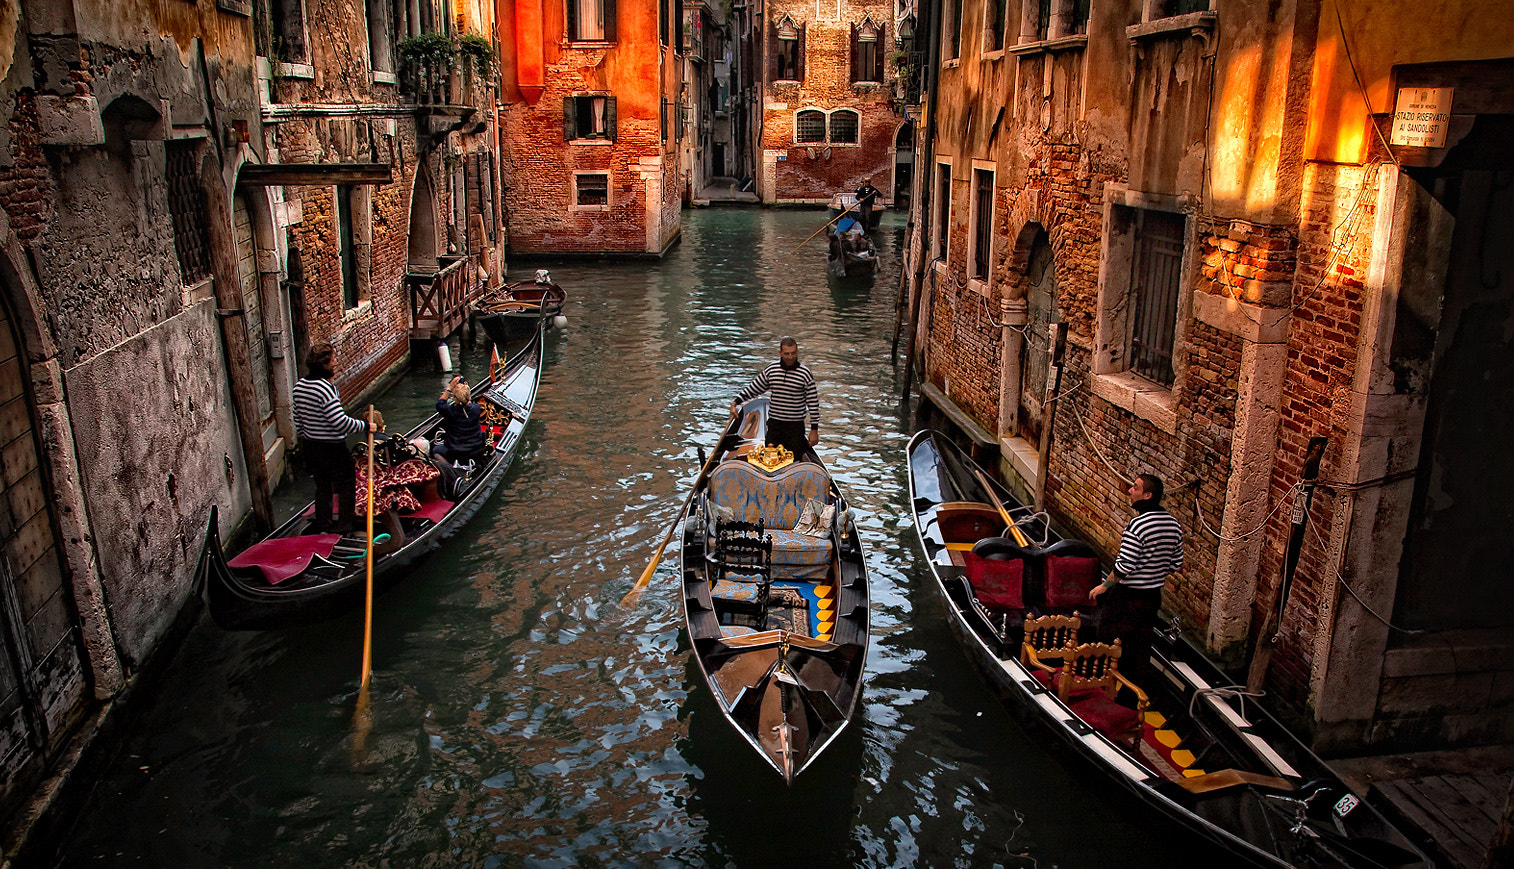 Photograph Gondolas - Venice by Vasja Pinzovski on 500px